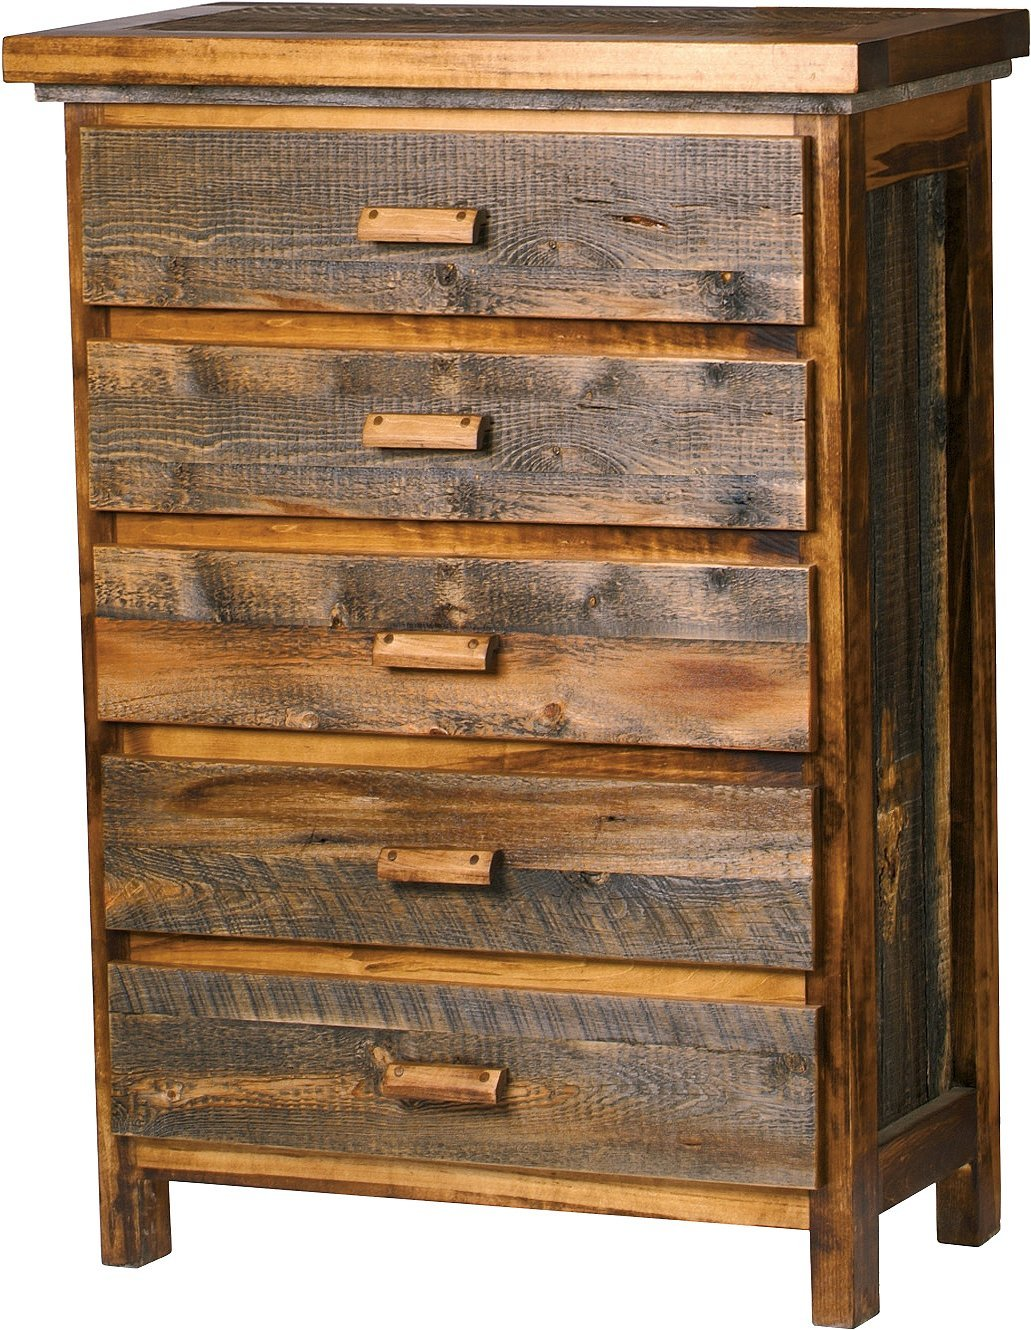 Mountain Woods Furniture The Wyoming Collection 5 Drawer Chest, Wood Pull